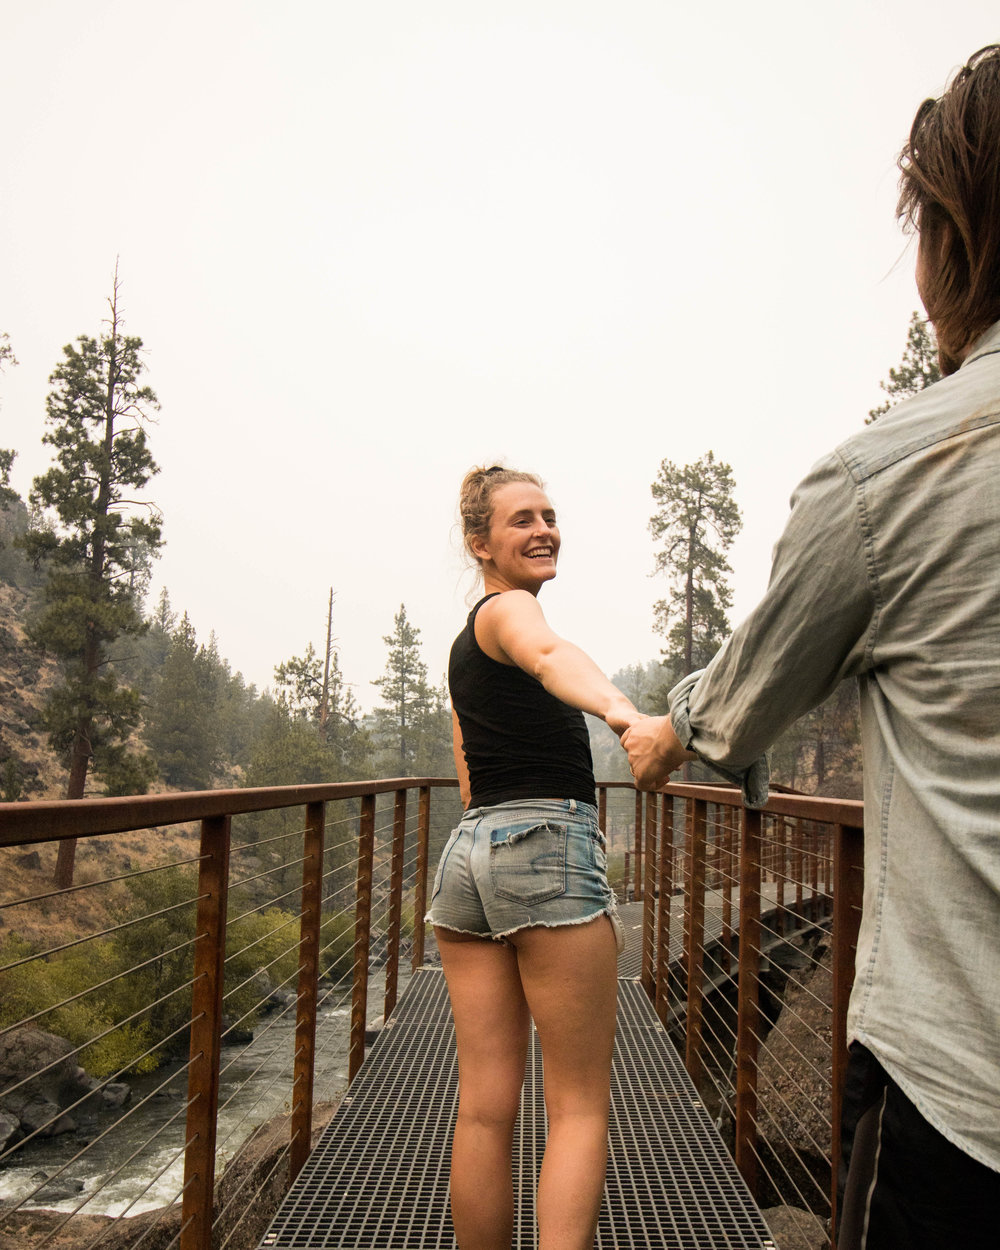 Want to travel, but not in a van? - While we mostly stick to driving around the United States in our tiny home on wheels, we also like to get out of the country once in a while! Check out our tips & tricks on how to travel easily and affordably:Start traveling! ➝